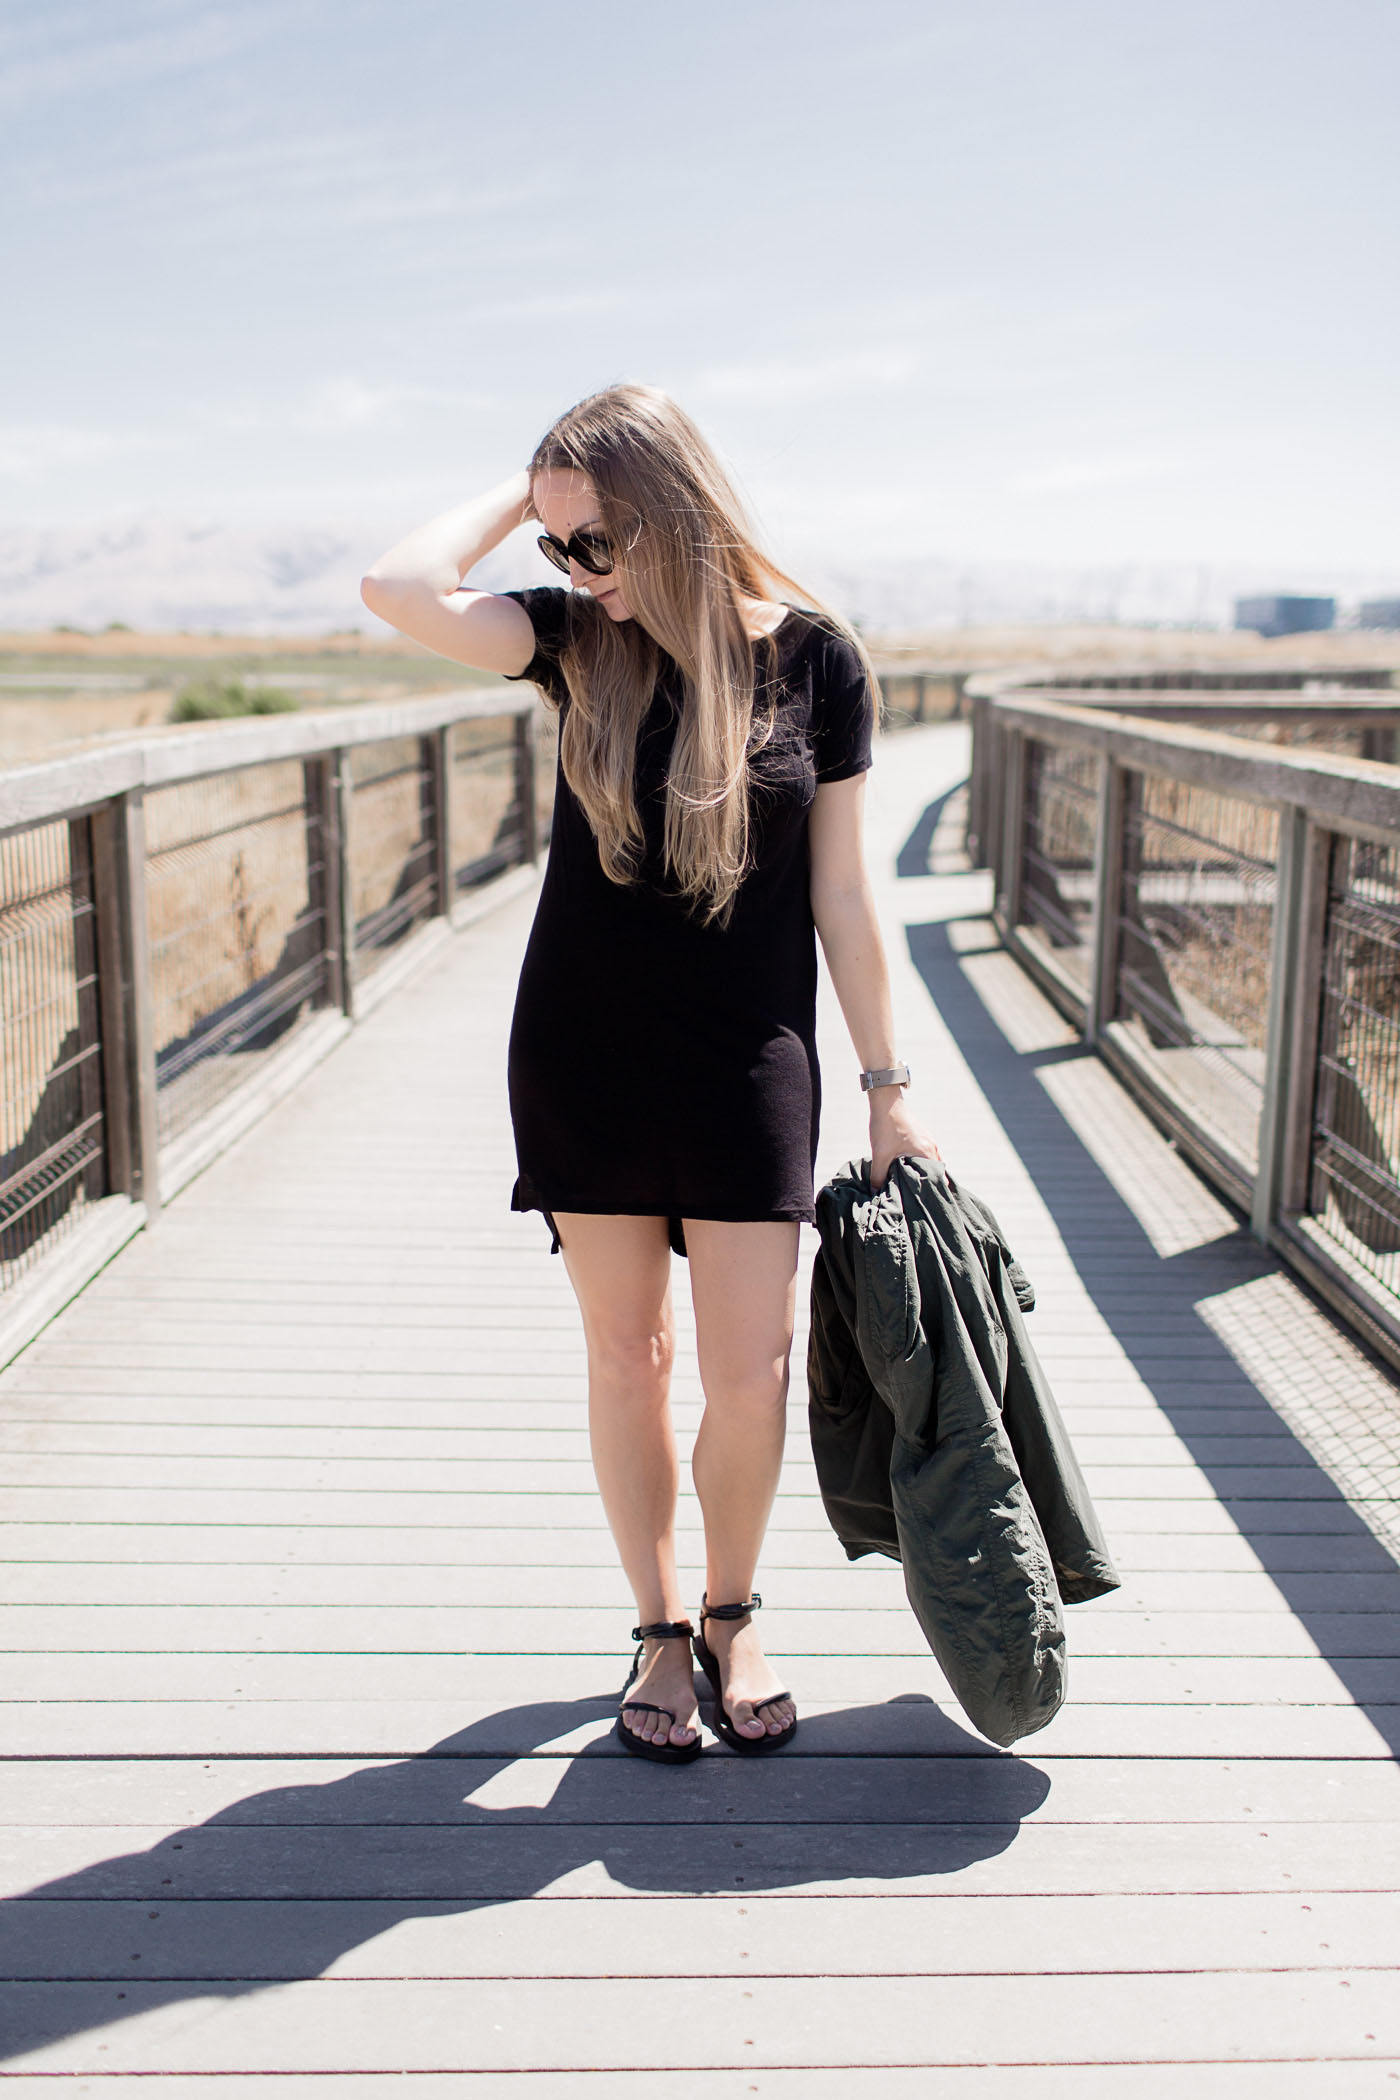 Casual Black Dress, a Summer to Fall transitional outfit.